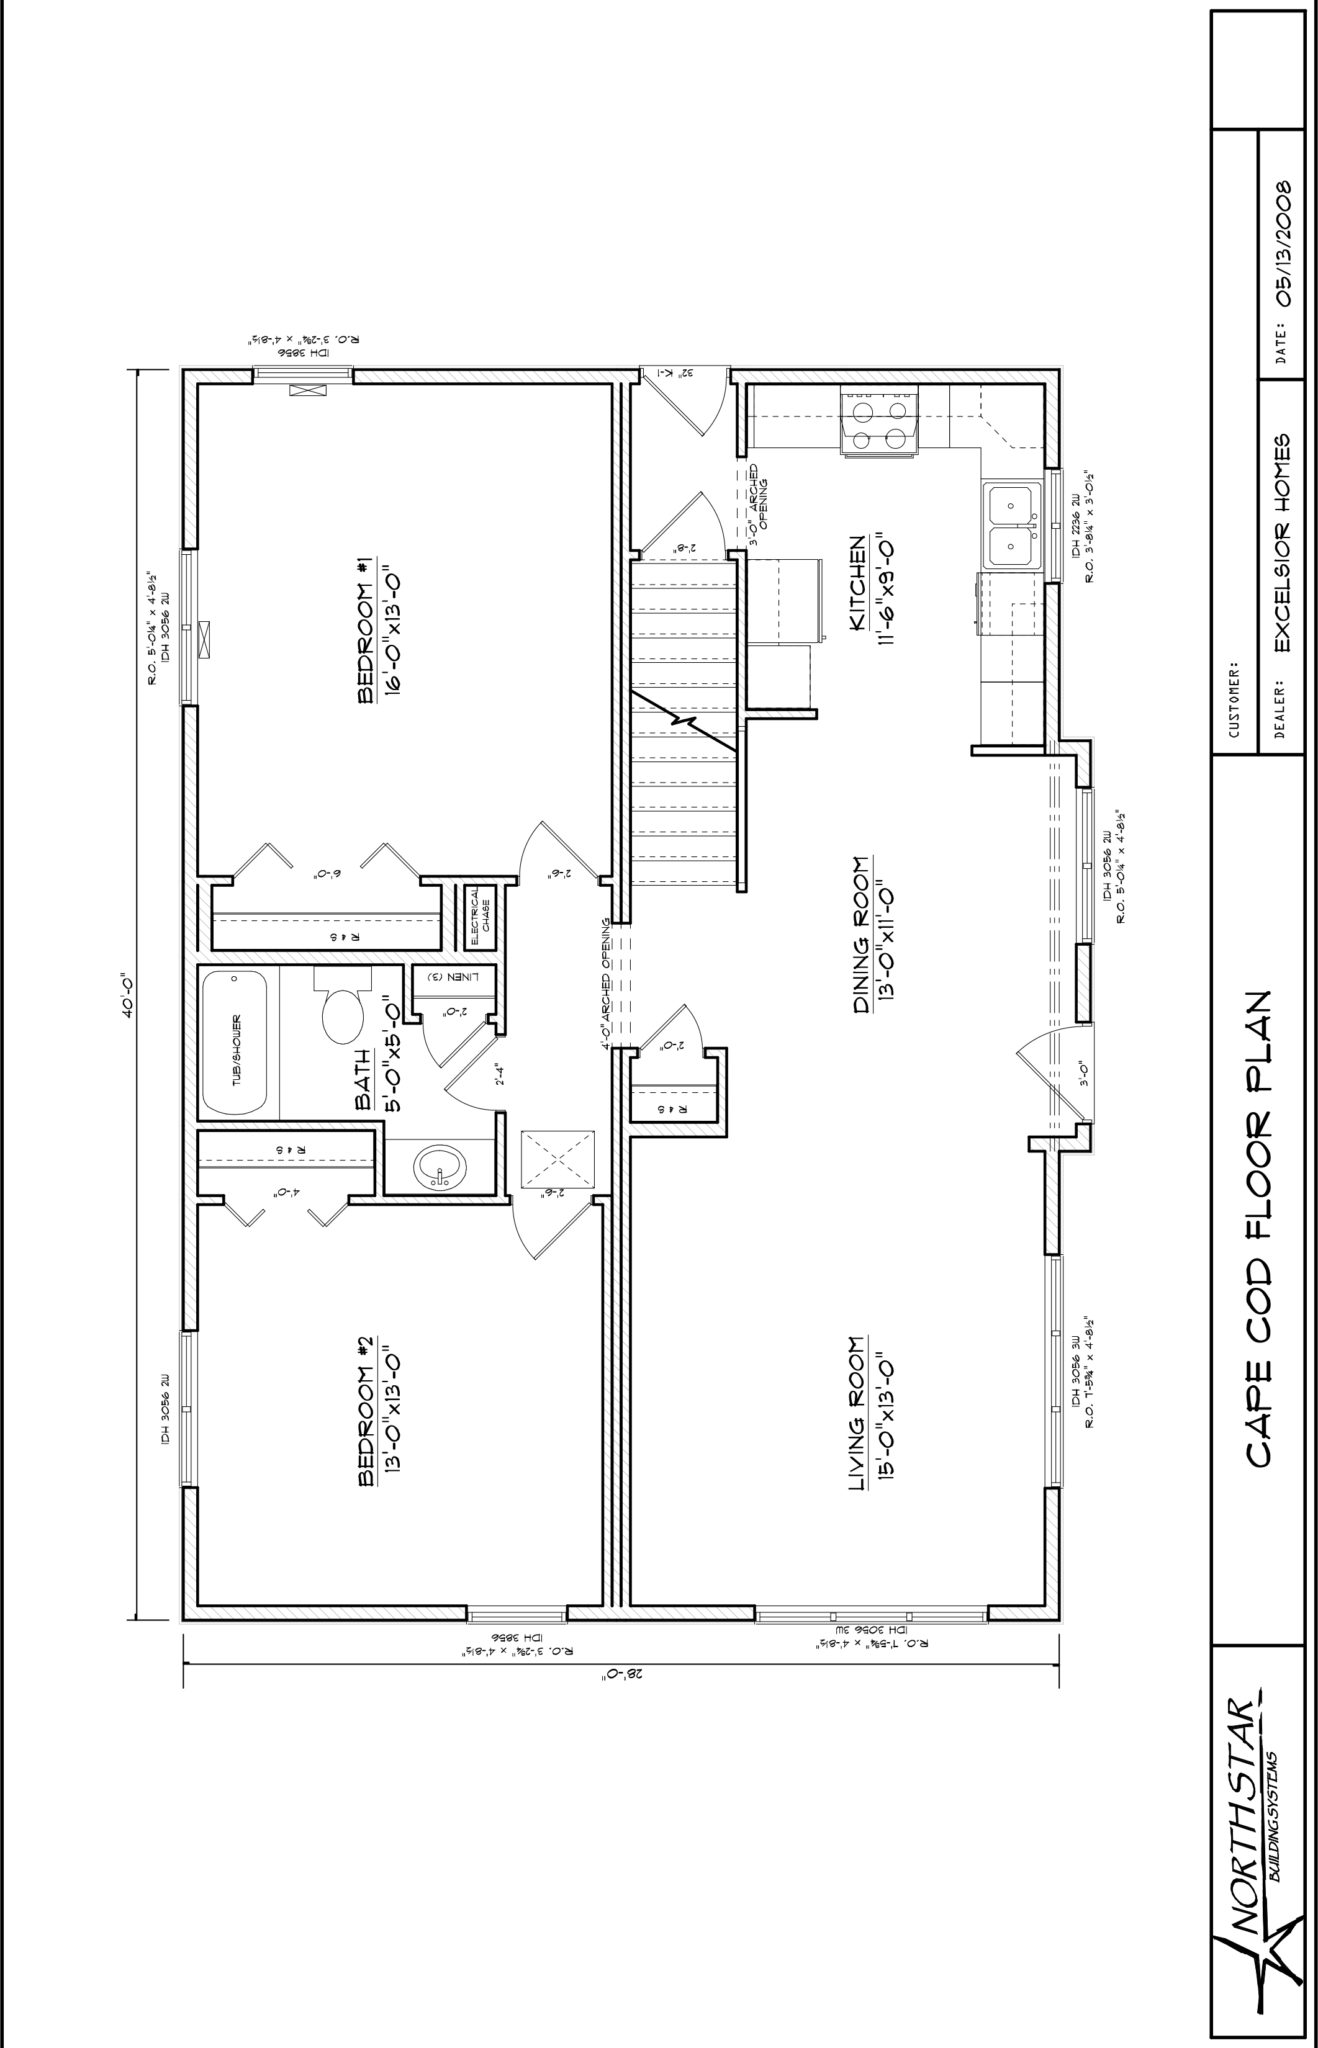 Cape cod floor plans modular homes gurus floor for Cape cod style floor plans